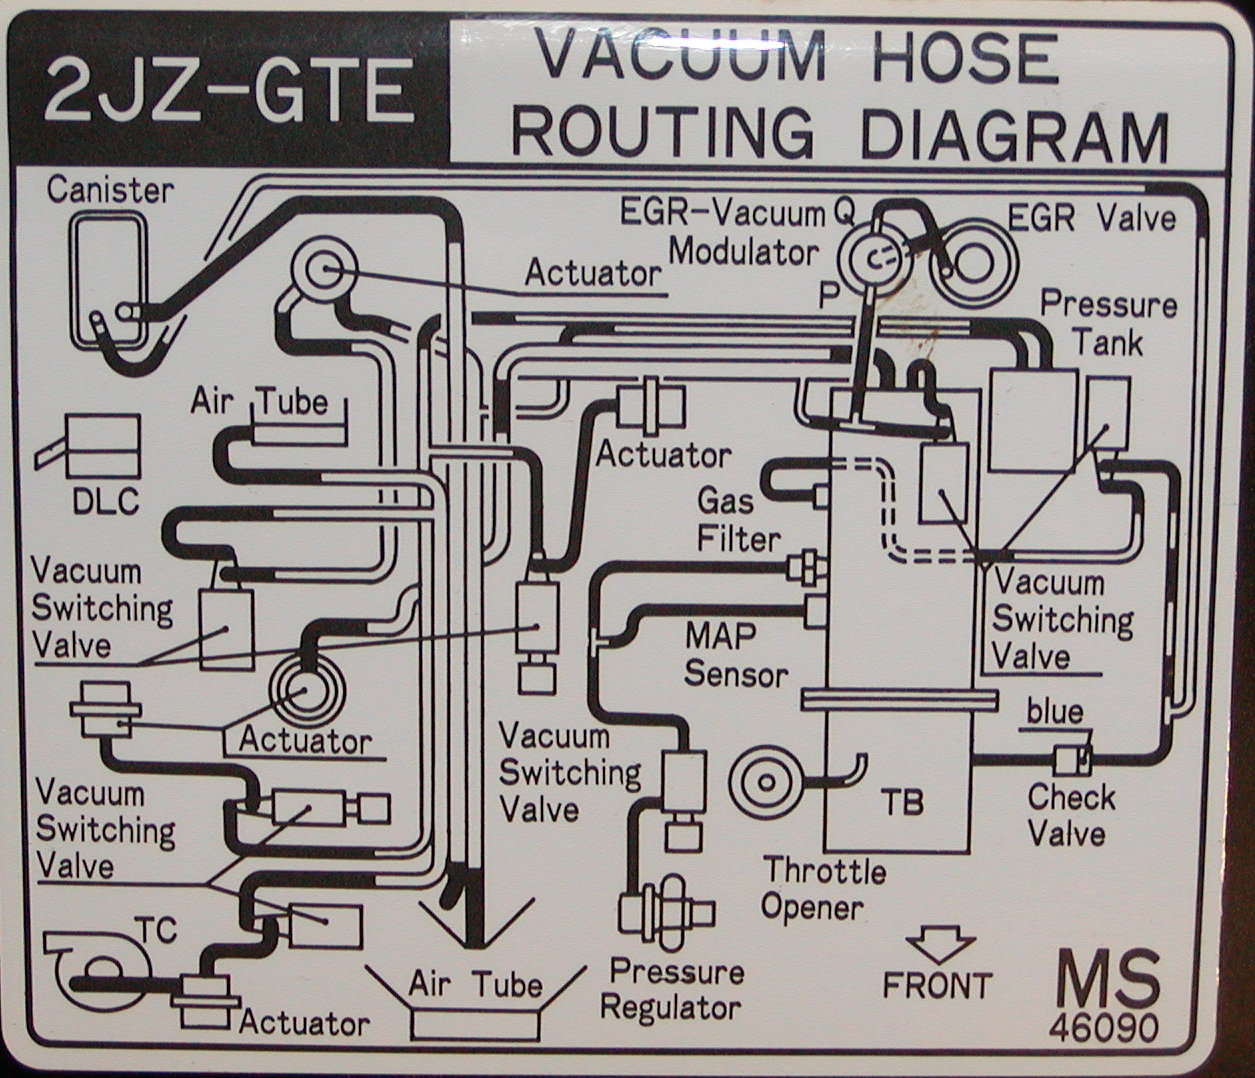 1jz Wiring Vacuum Diagram Excellent Electrical House Ignitor Gte Engine Library Rh 98 Evitta De Harness